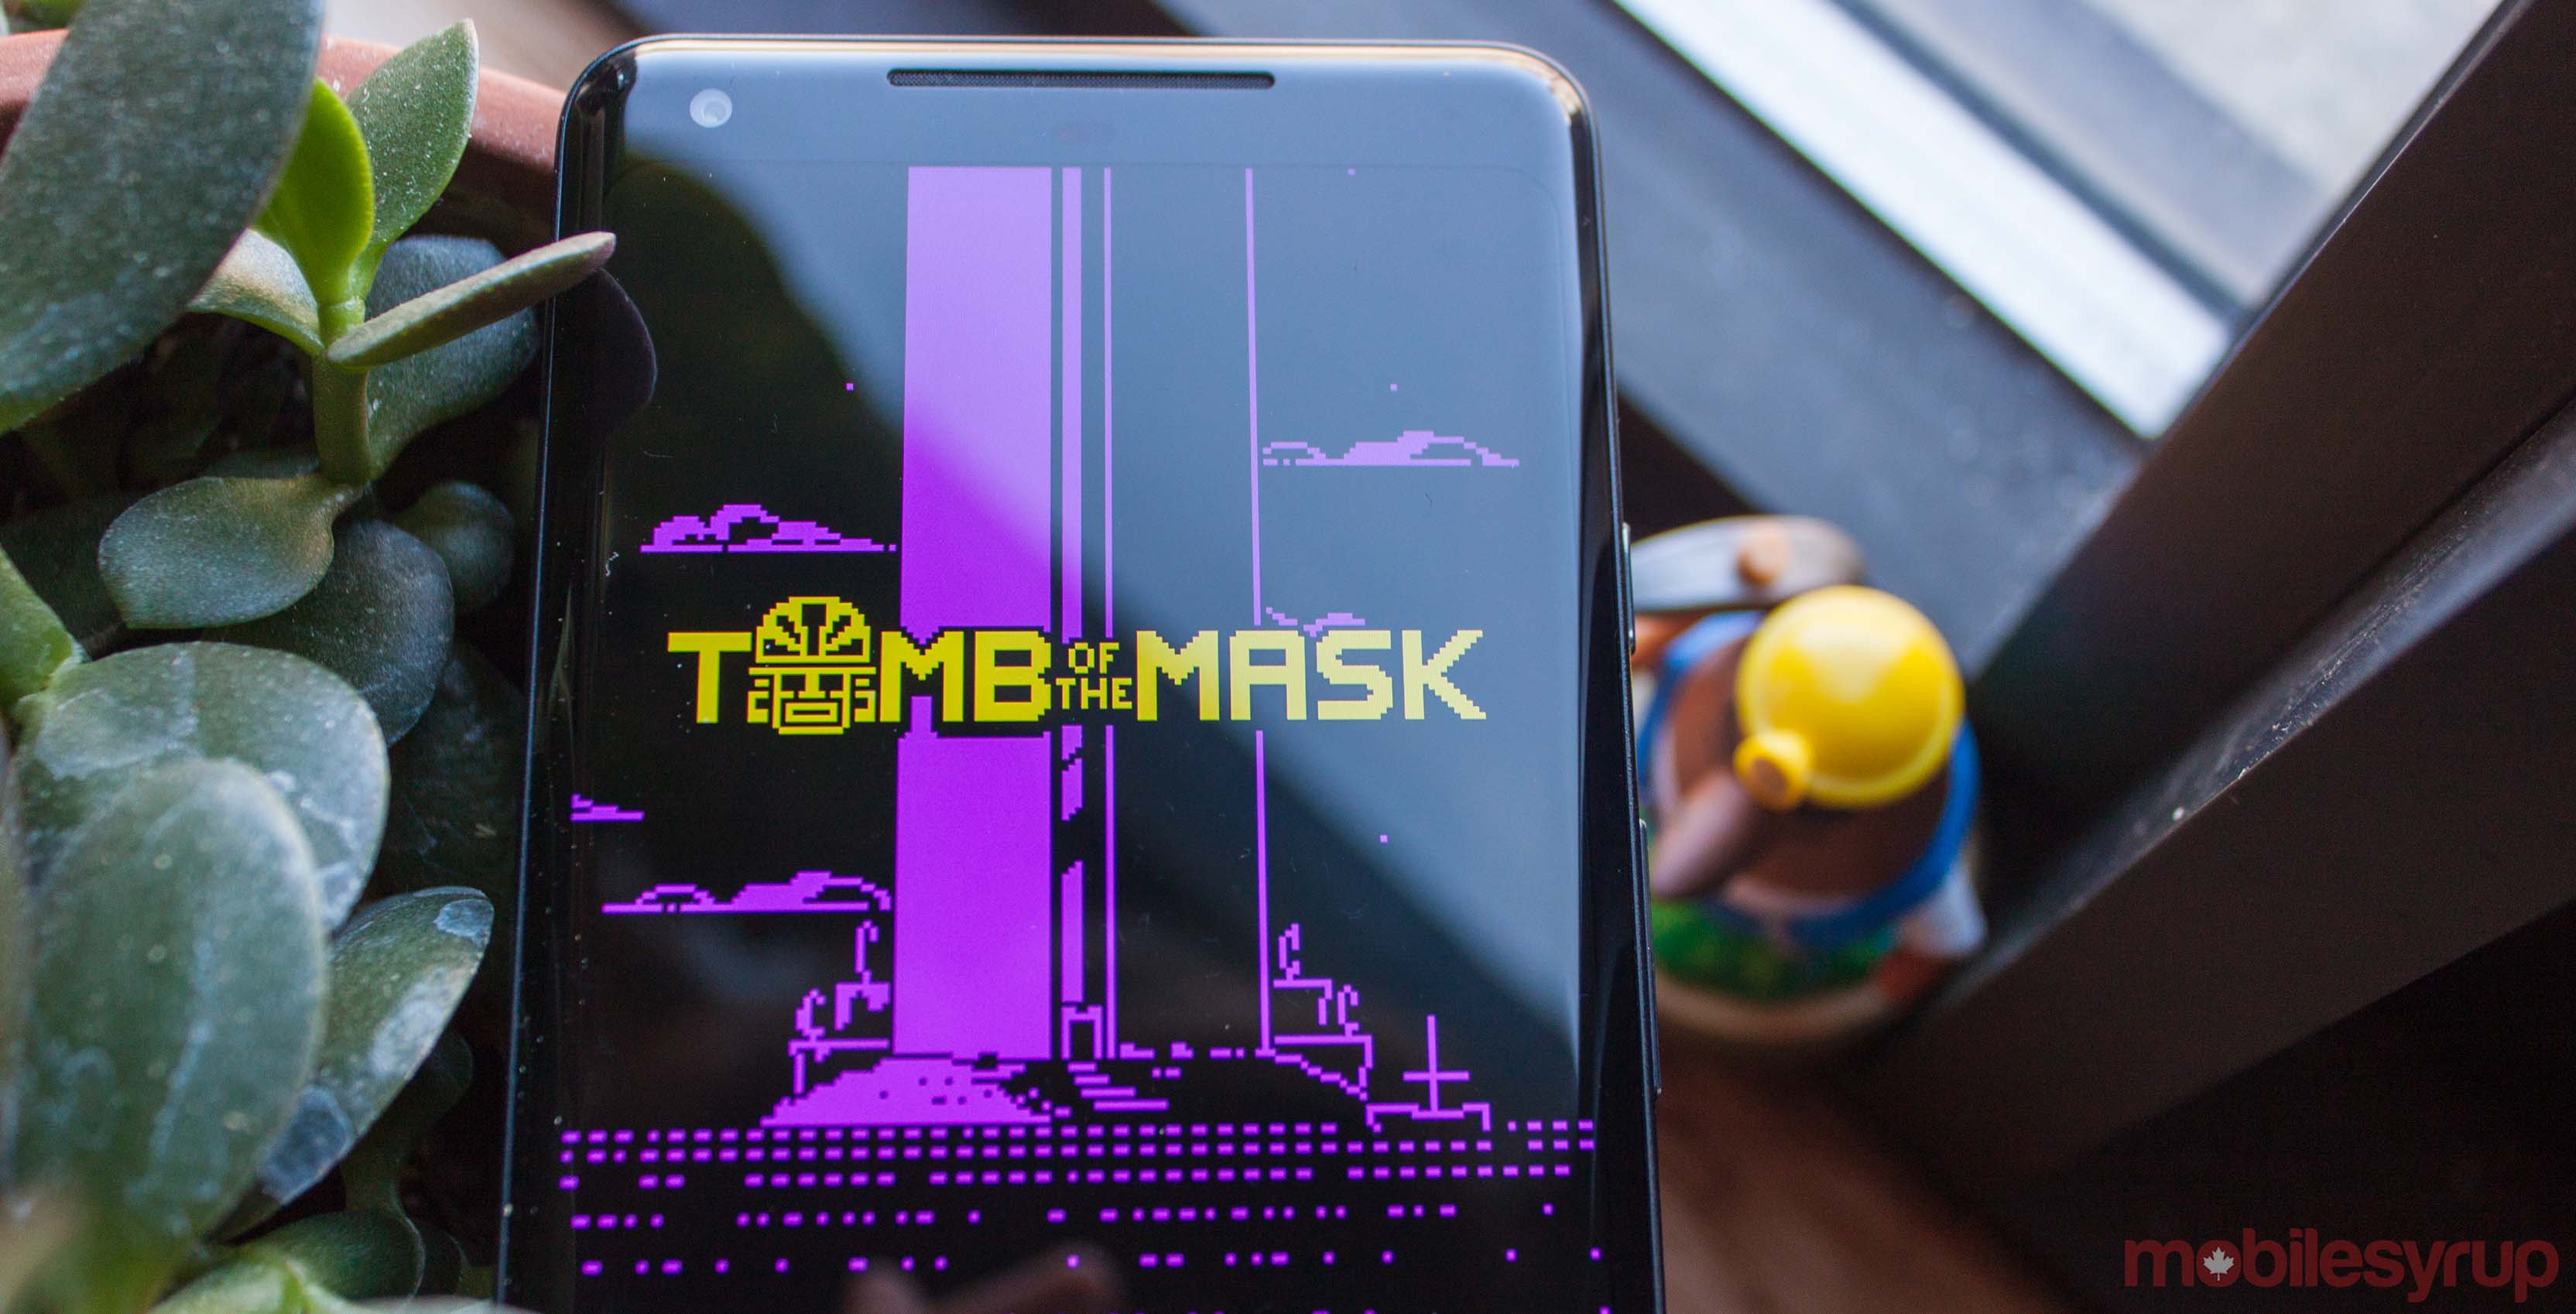 Tomb of the Mask title screen